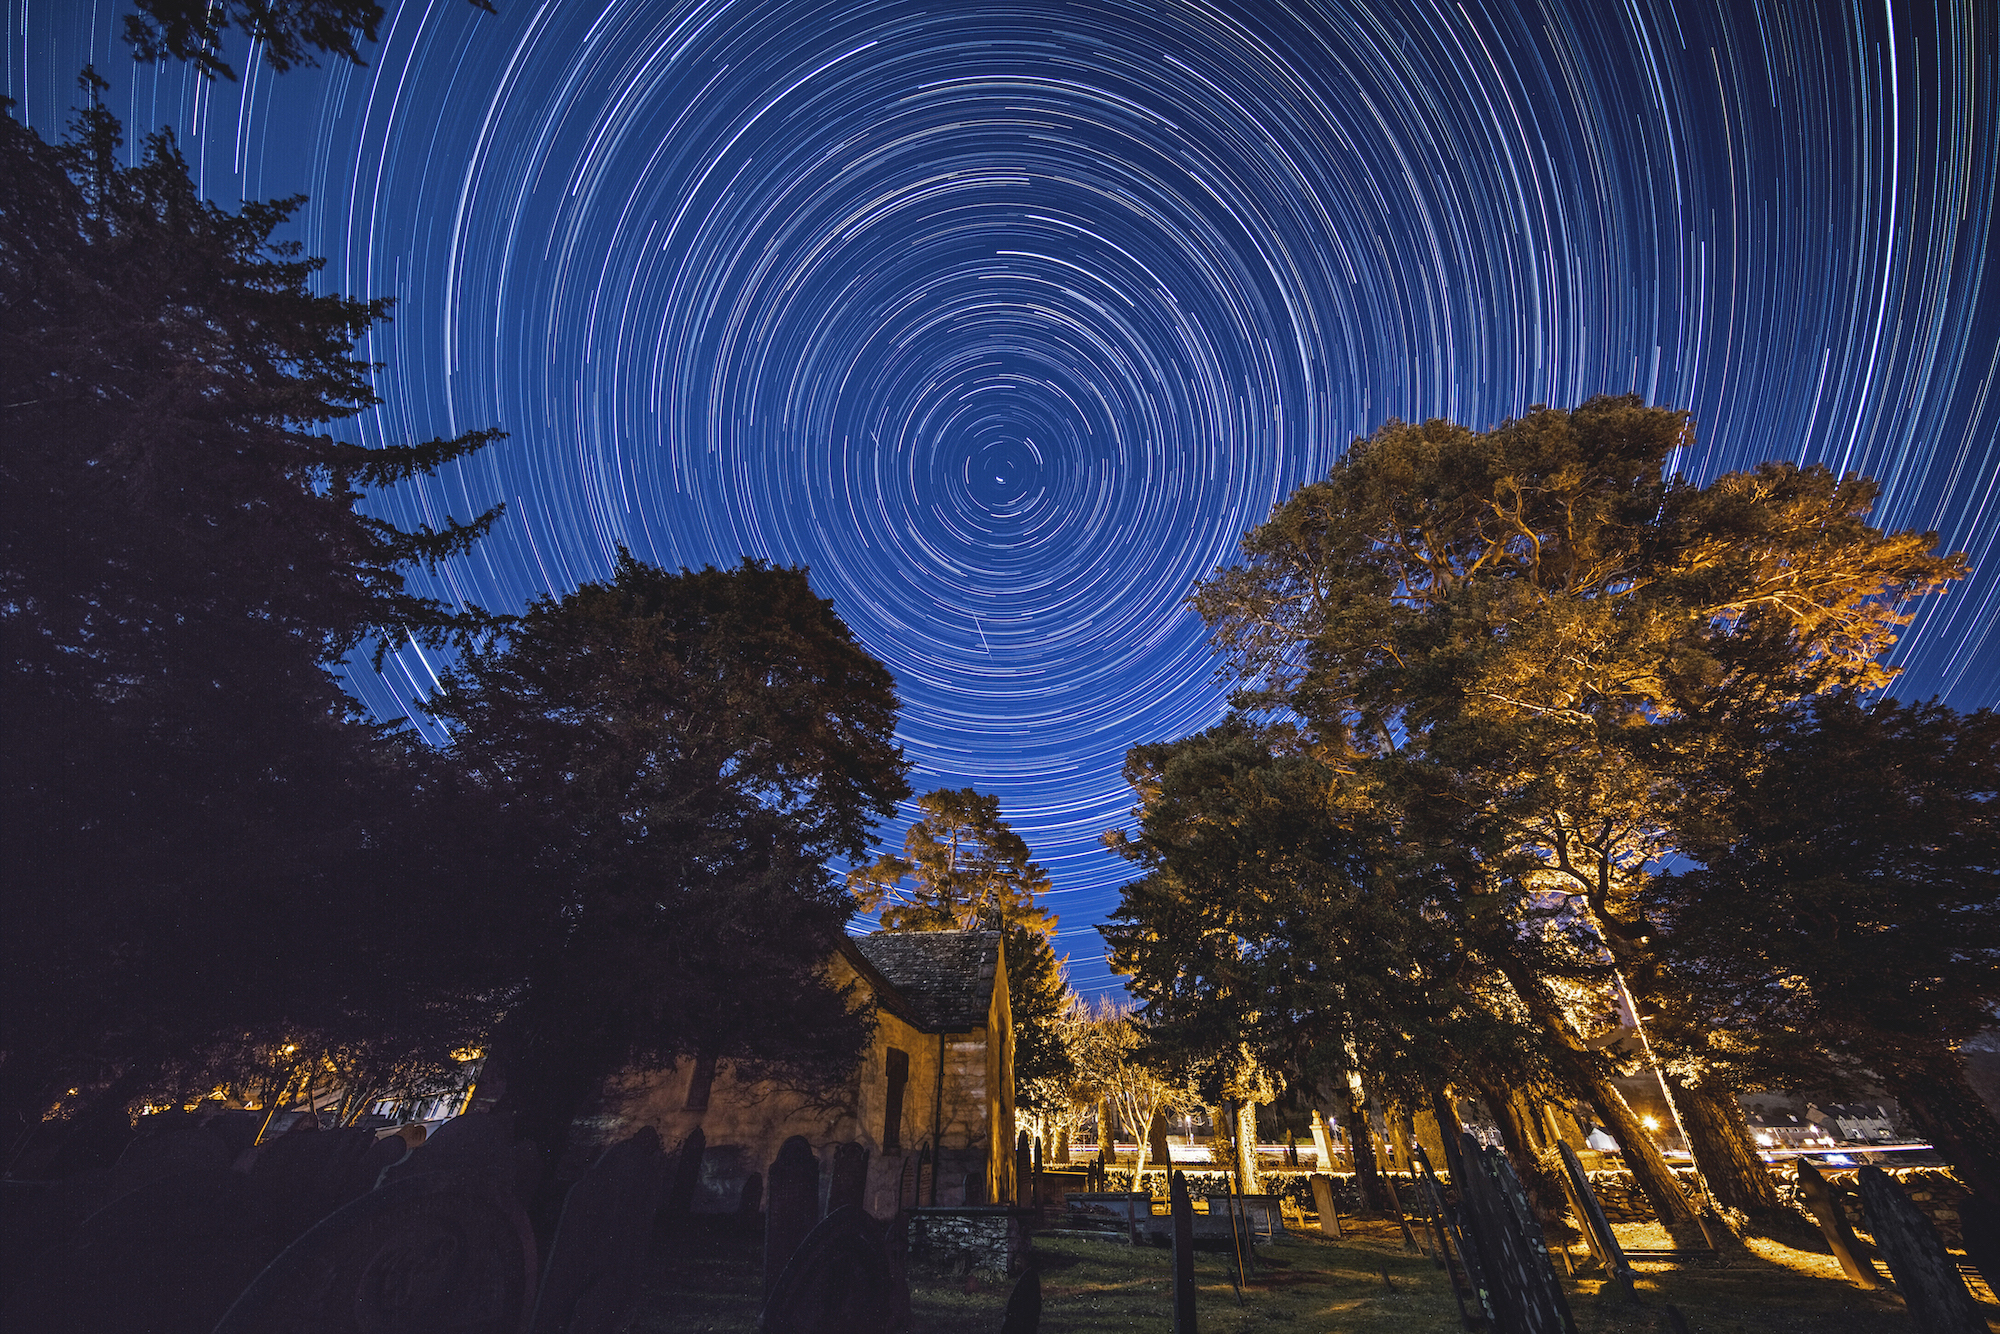 Star trails in the Snowdonia national park, Wales.